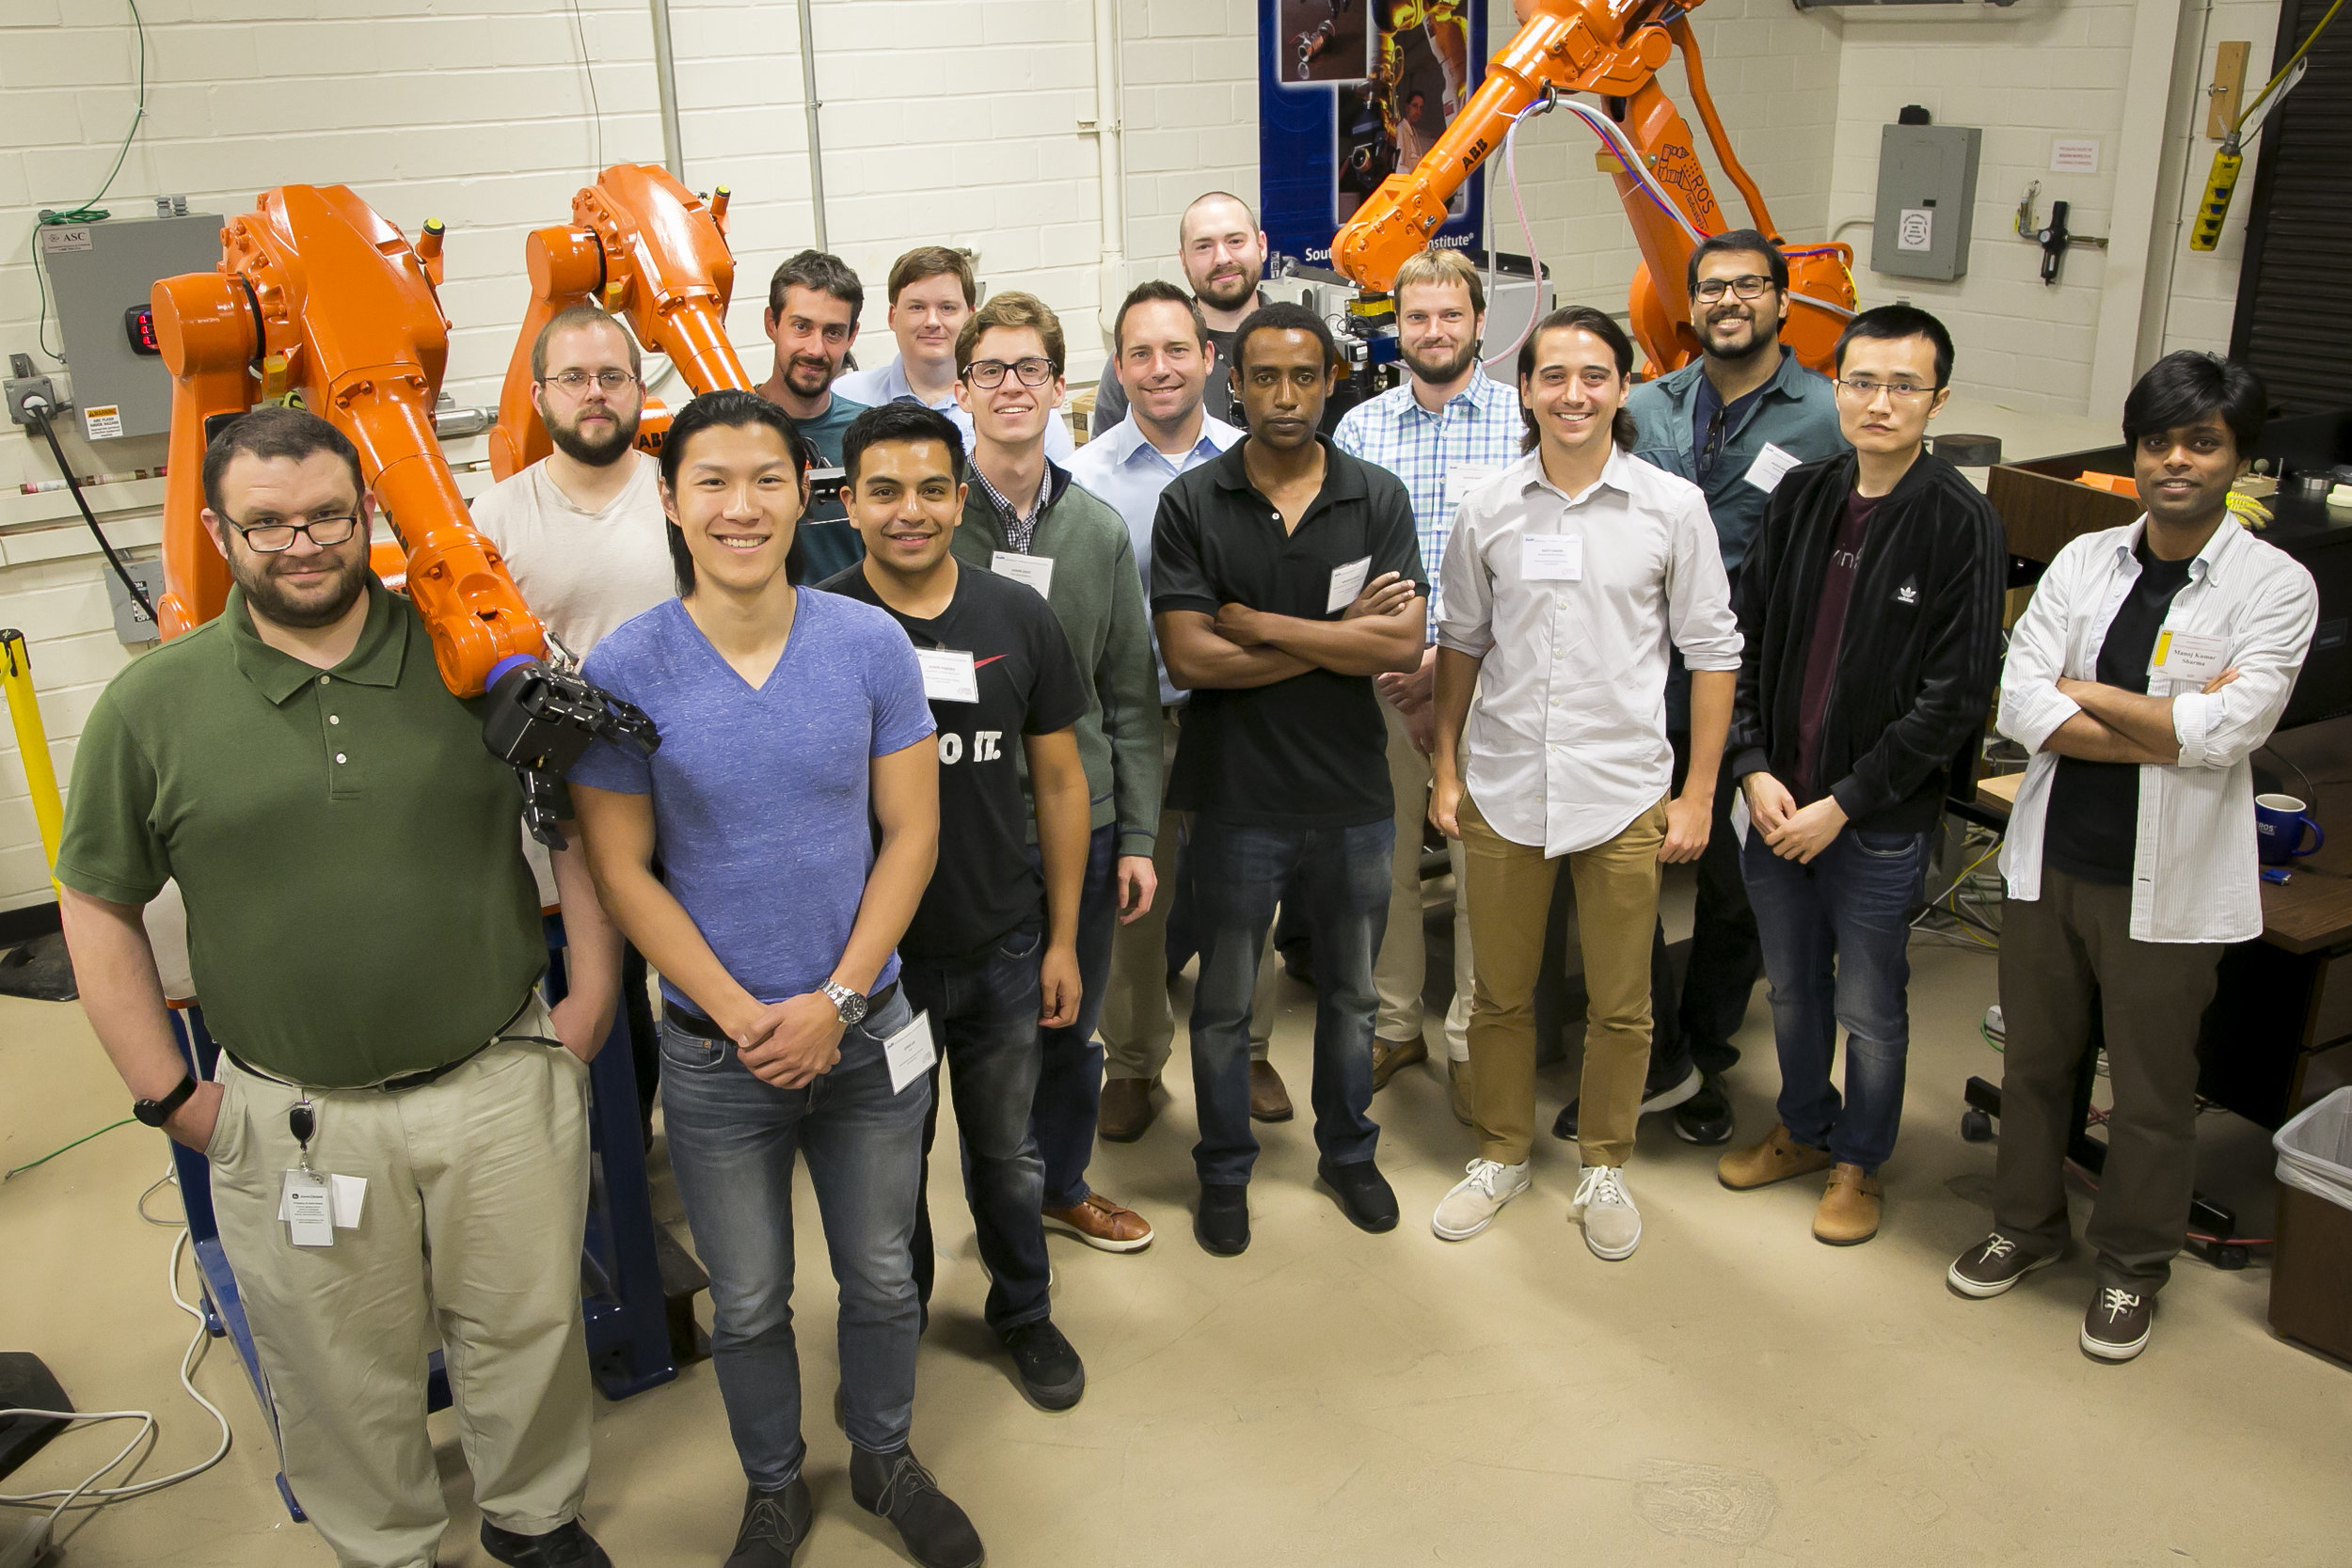 THE FULL CLASS WITH SWRI ROS-INDUSTRIAL SUPPORT STAFF INCLUDED